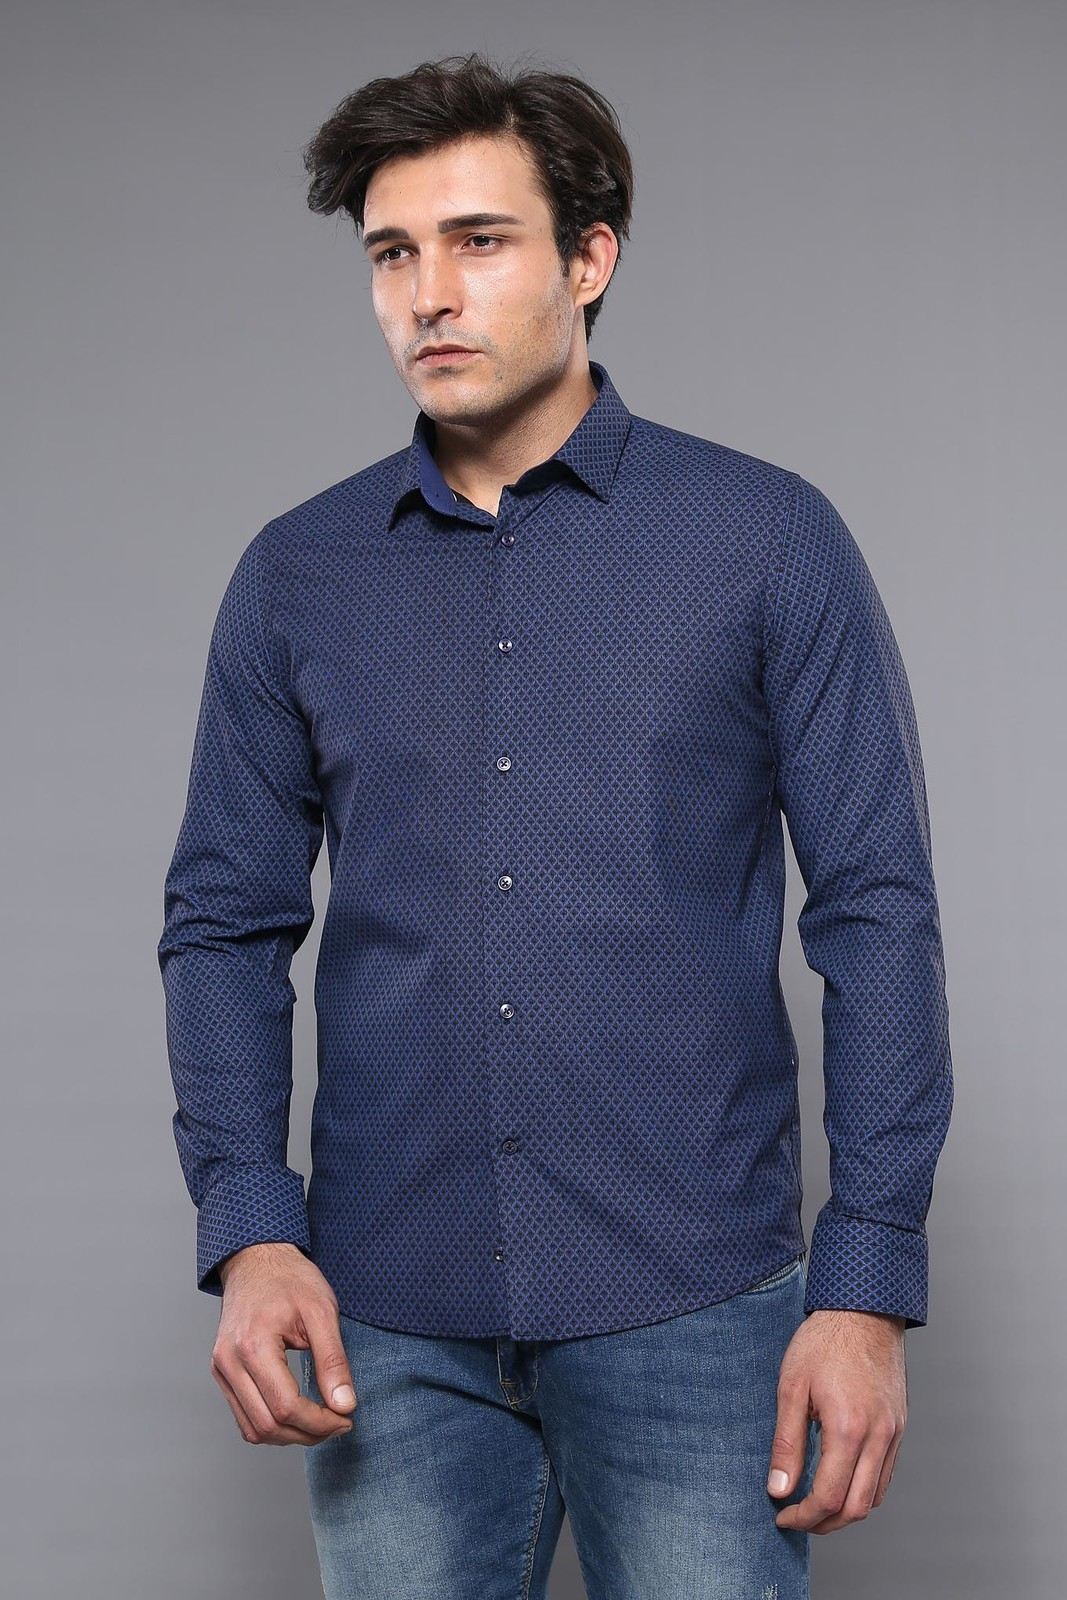 Navy Blue Patterned Long Sleeve Shirt | Wessi